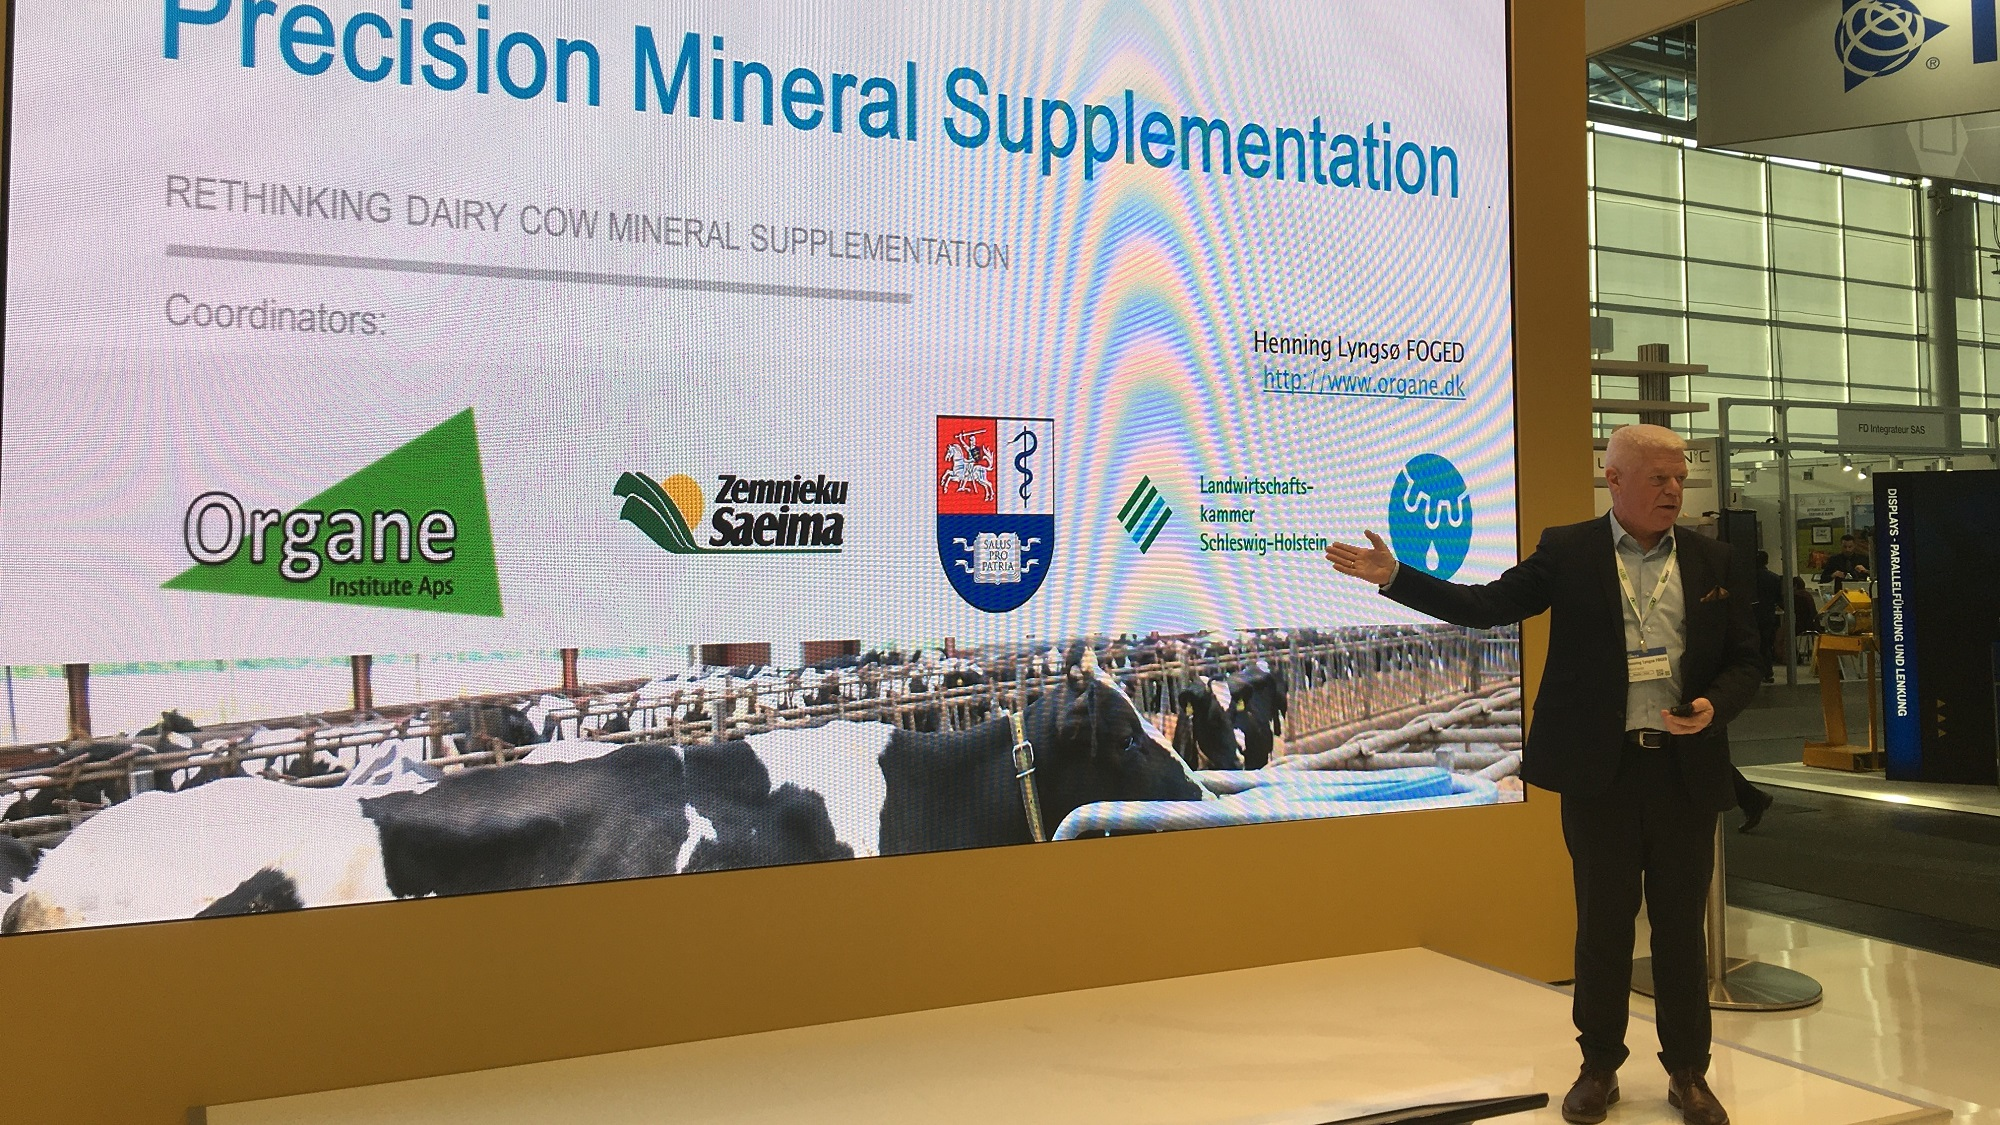 Showcasing Precision Mineral Supplementation at Agritechnica